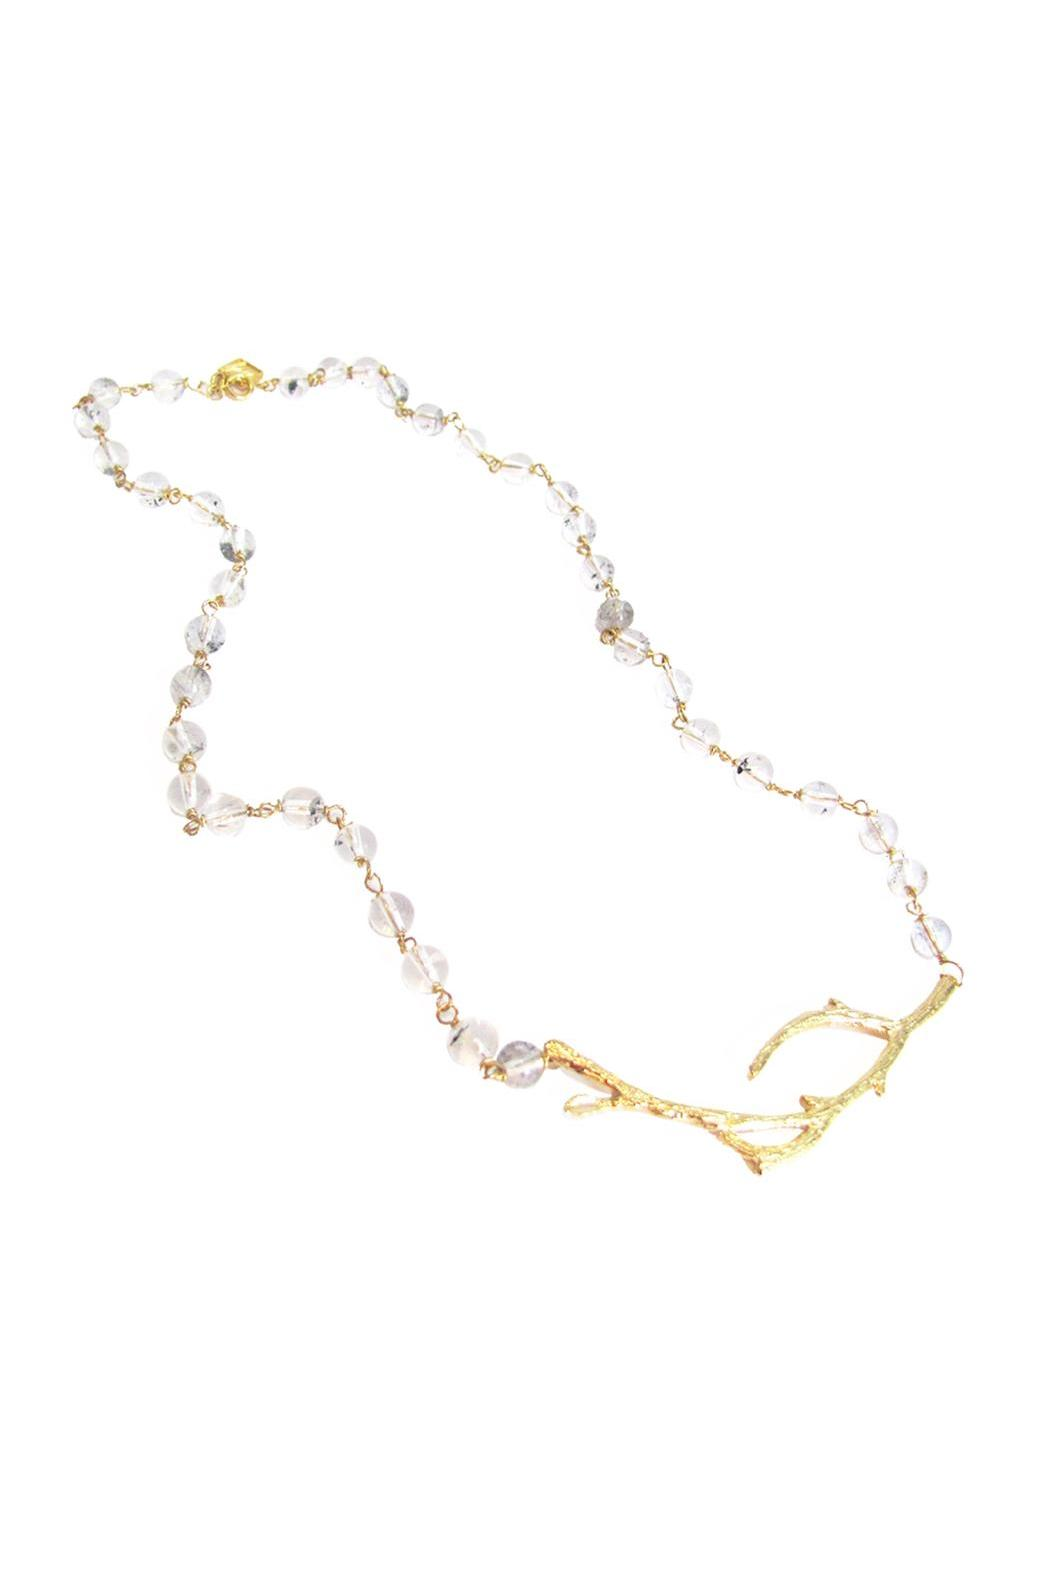 Malia Jewelry Clear-Quartz Branch Necklace - Main Image